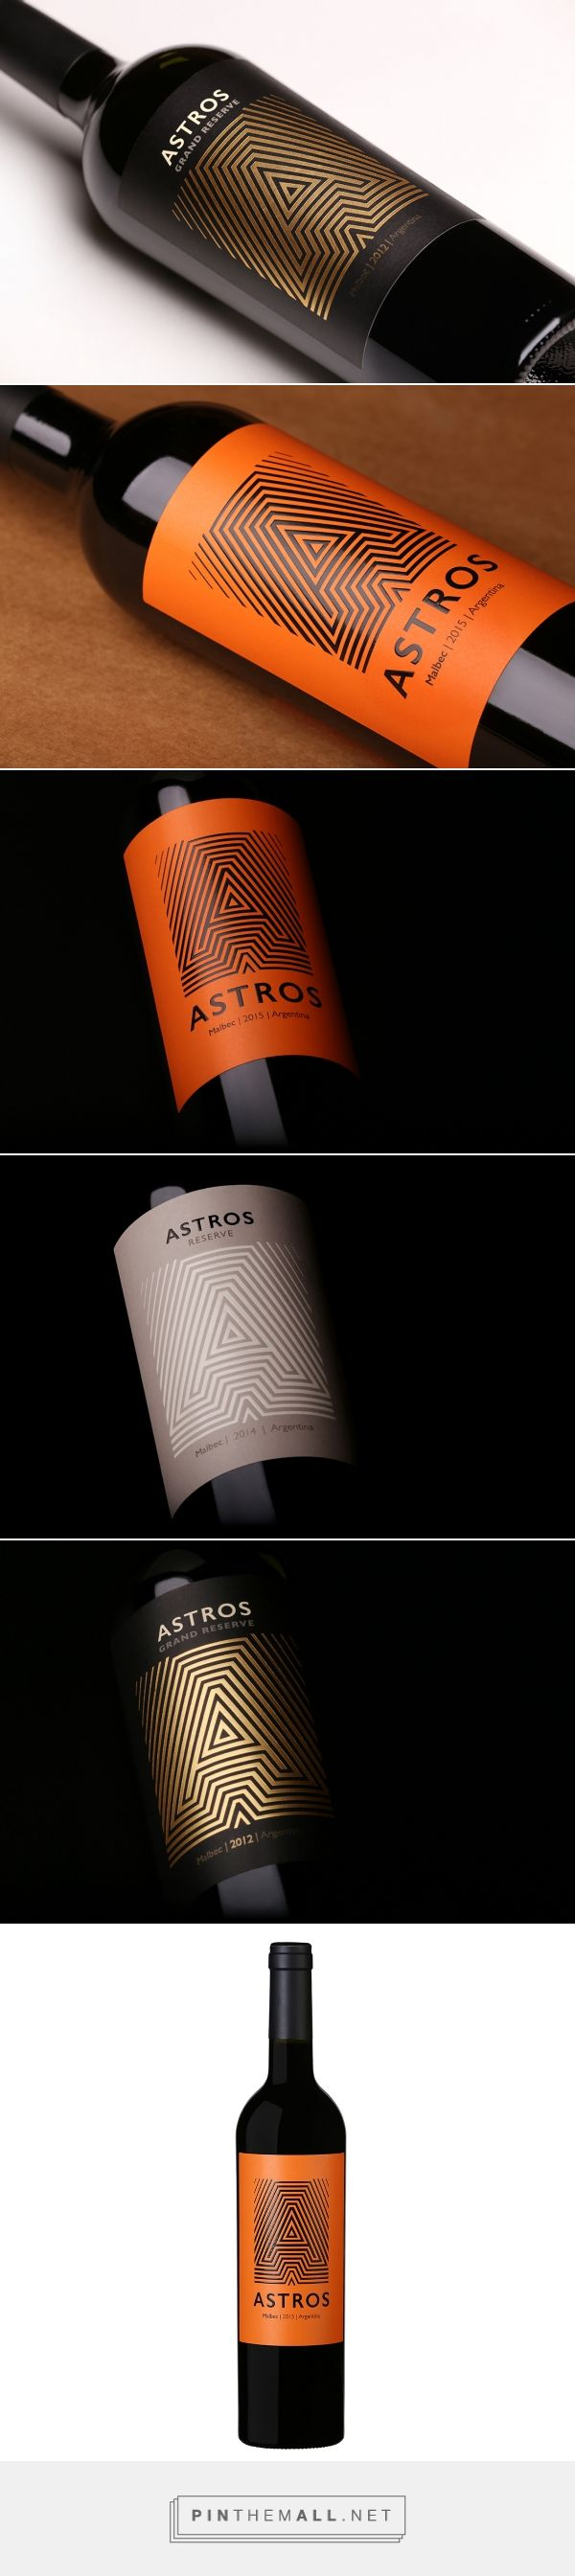 Astros Wine packaging design by Guillo Milia Branding + Comunicación - http://www.packagingoftheworld.com/2016/10/astros-wines.html